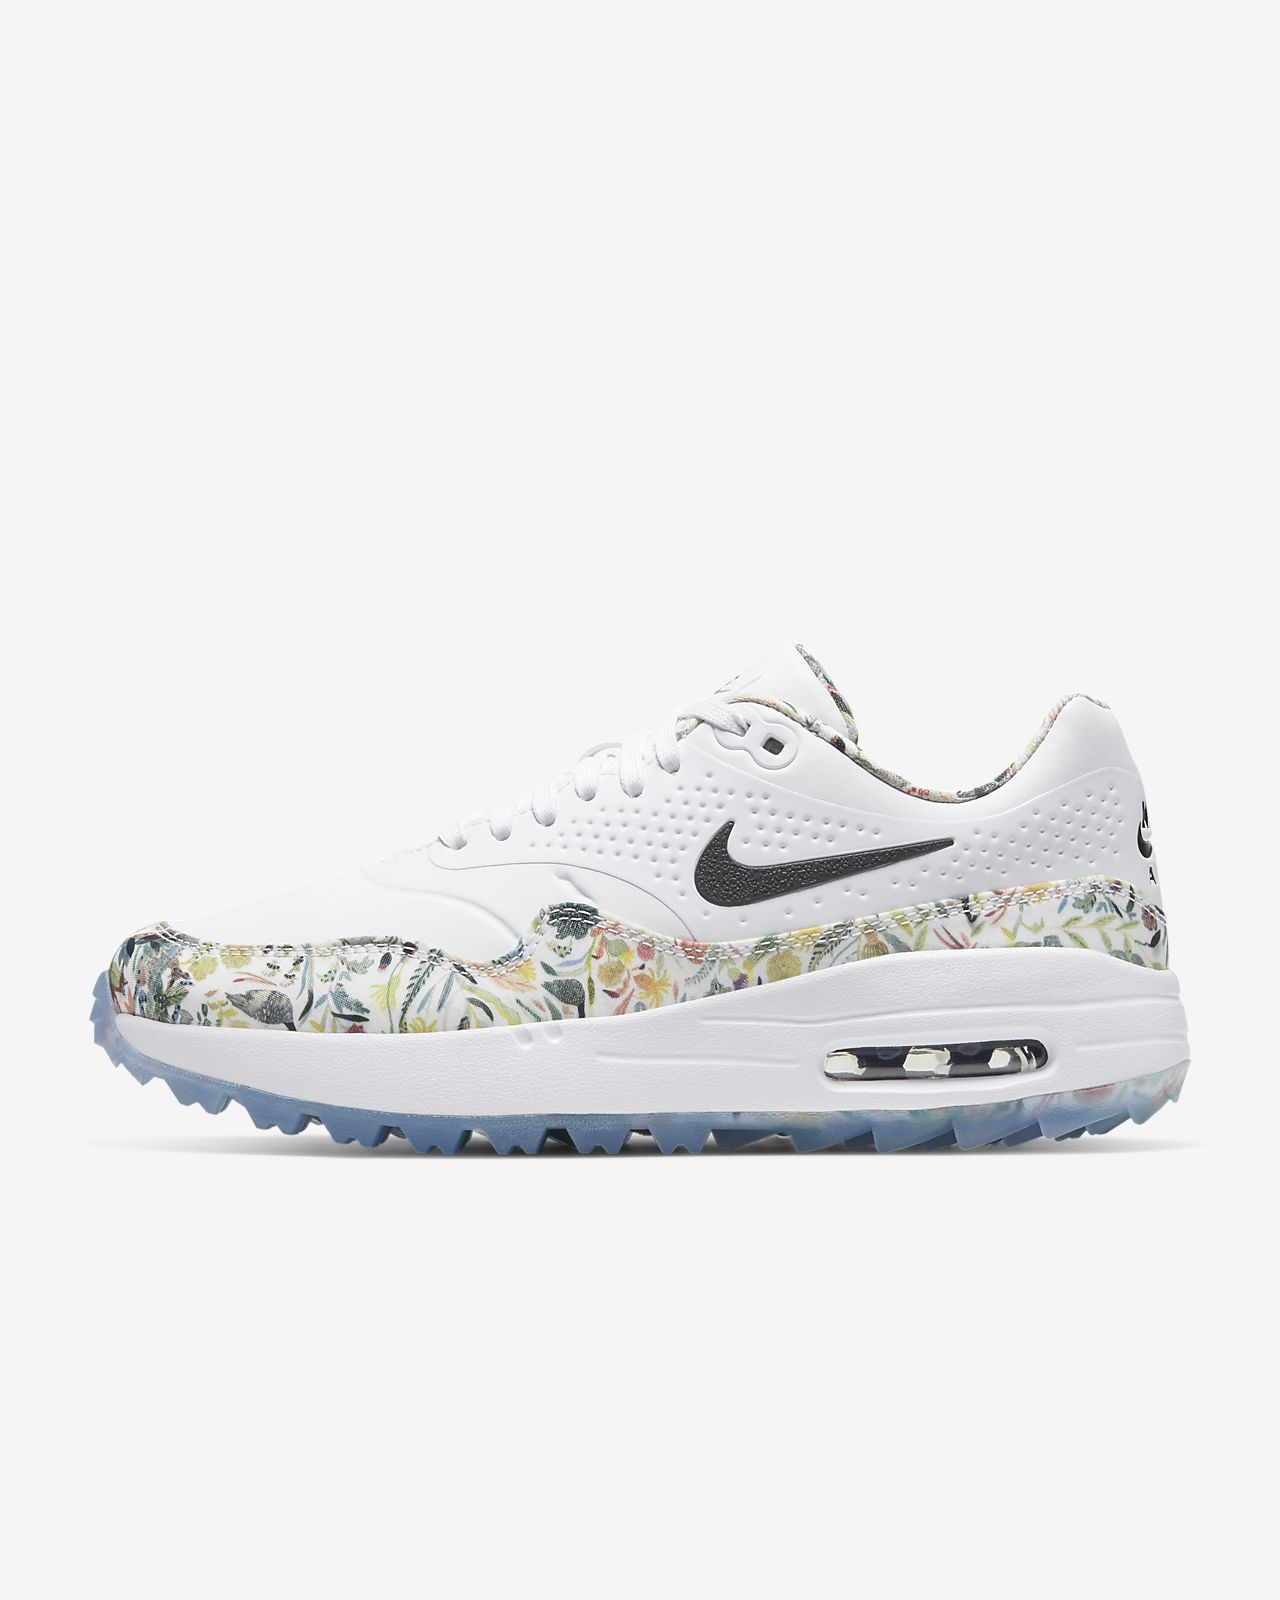 Nike Air Max 1 G NRG Women's Golf Shoe